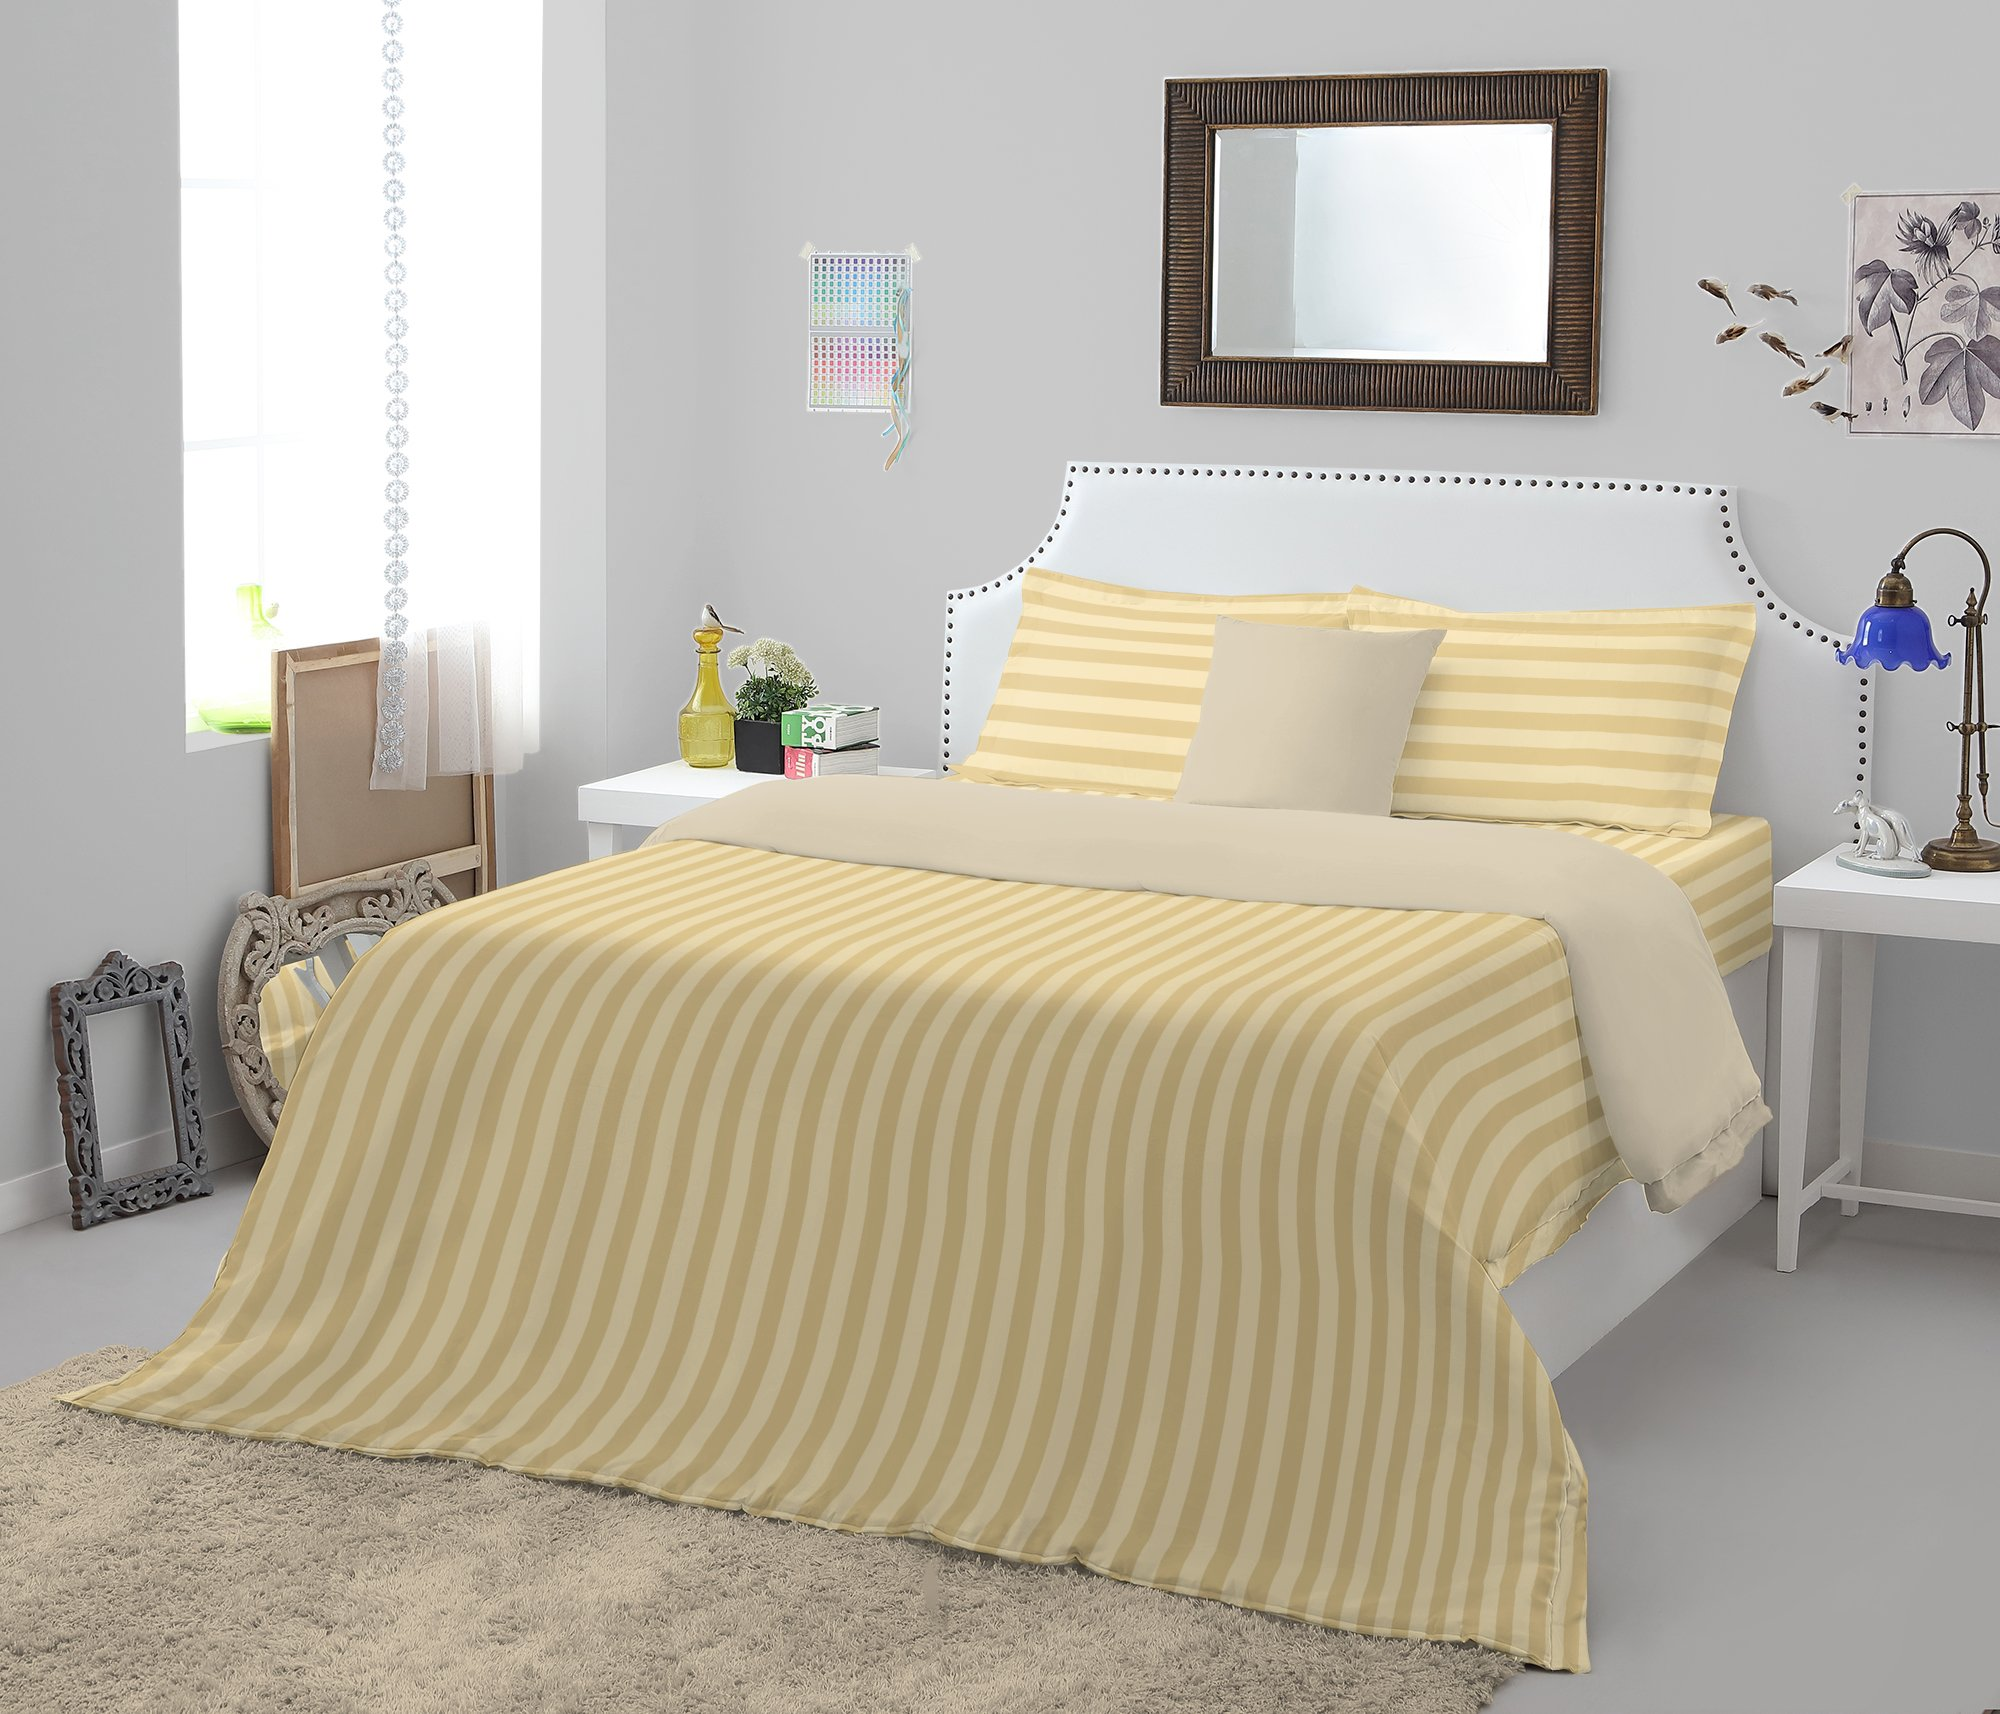 Spaces Sky Cotton King Bed Sheets in Beige Colour by Spaces